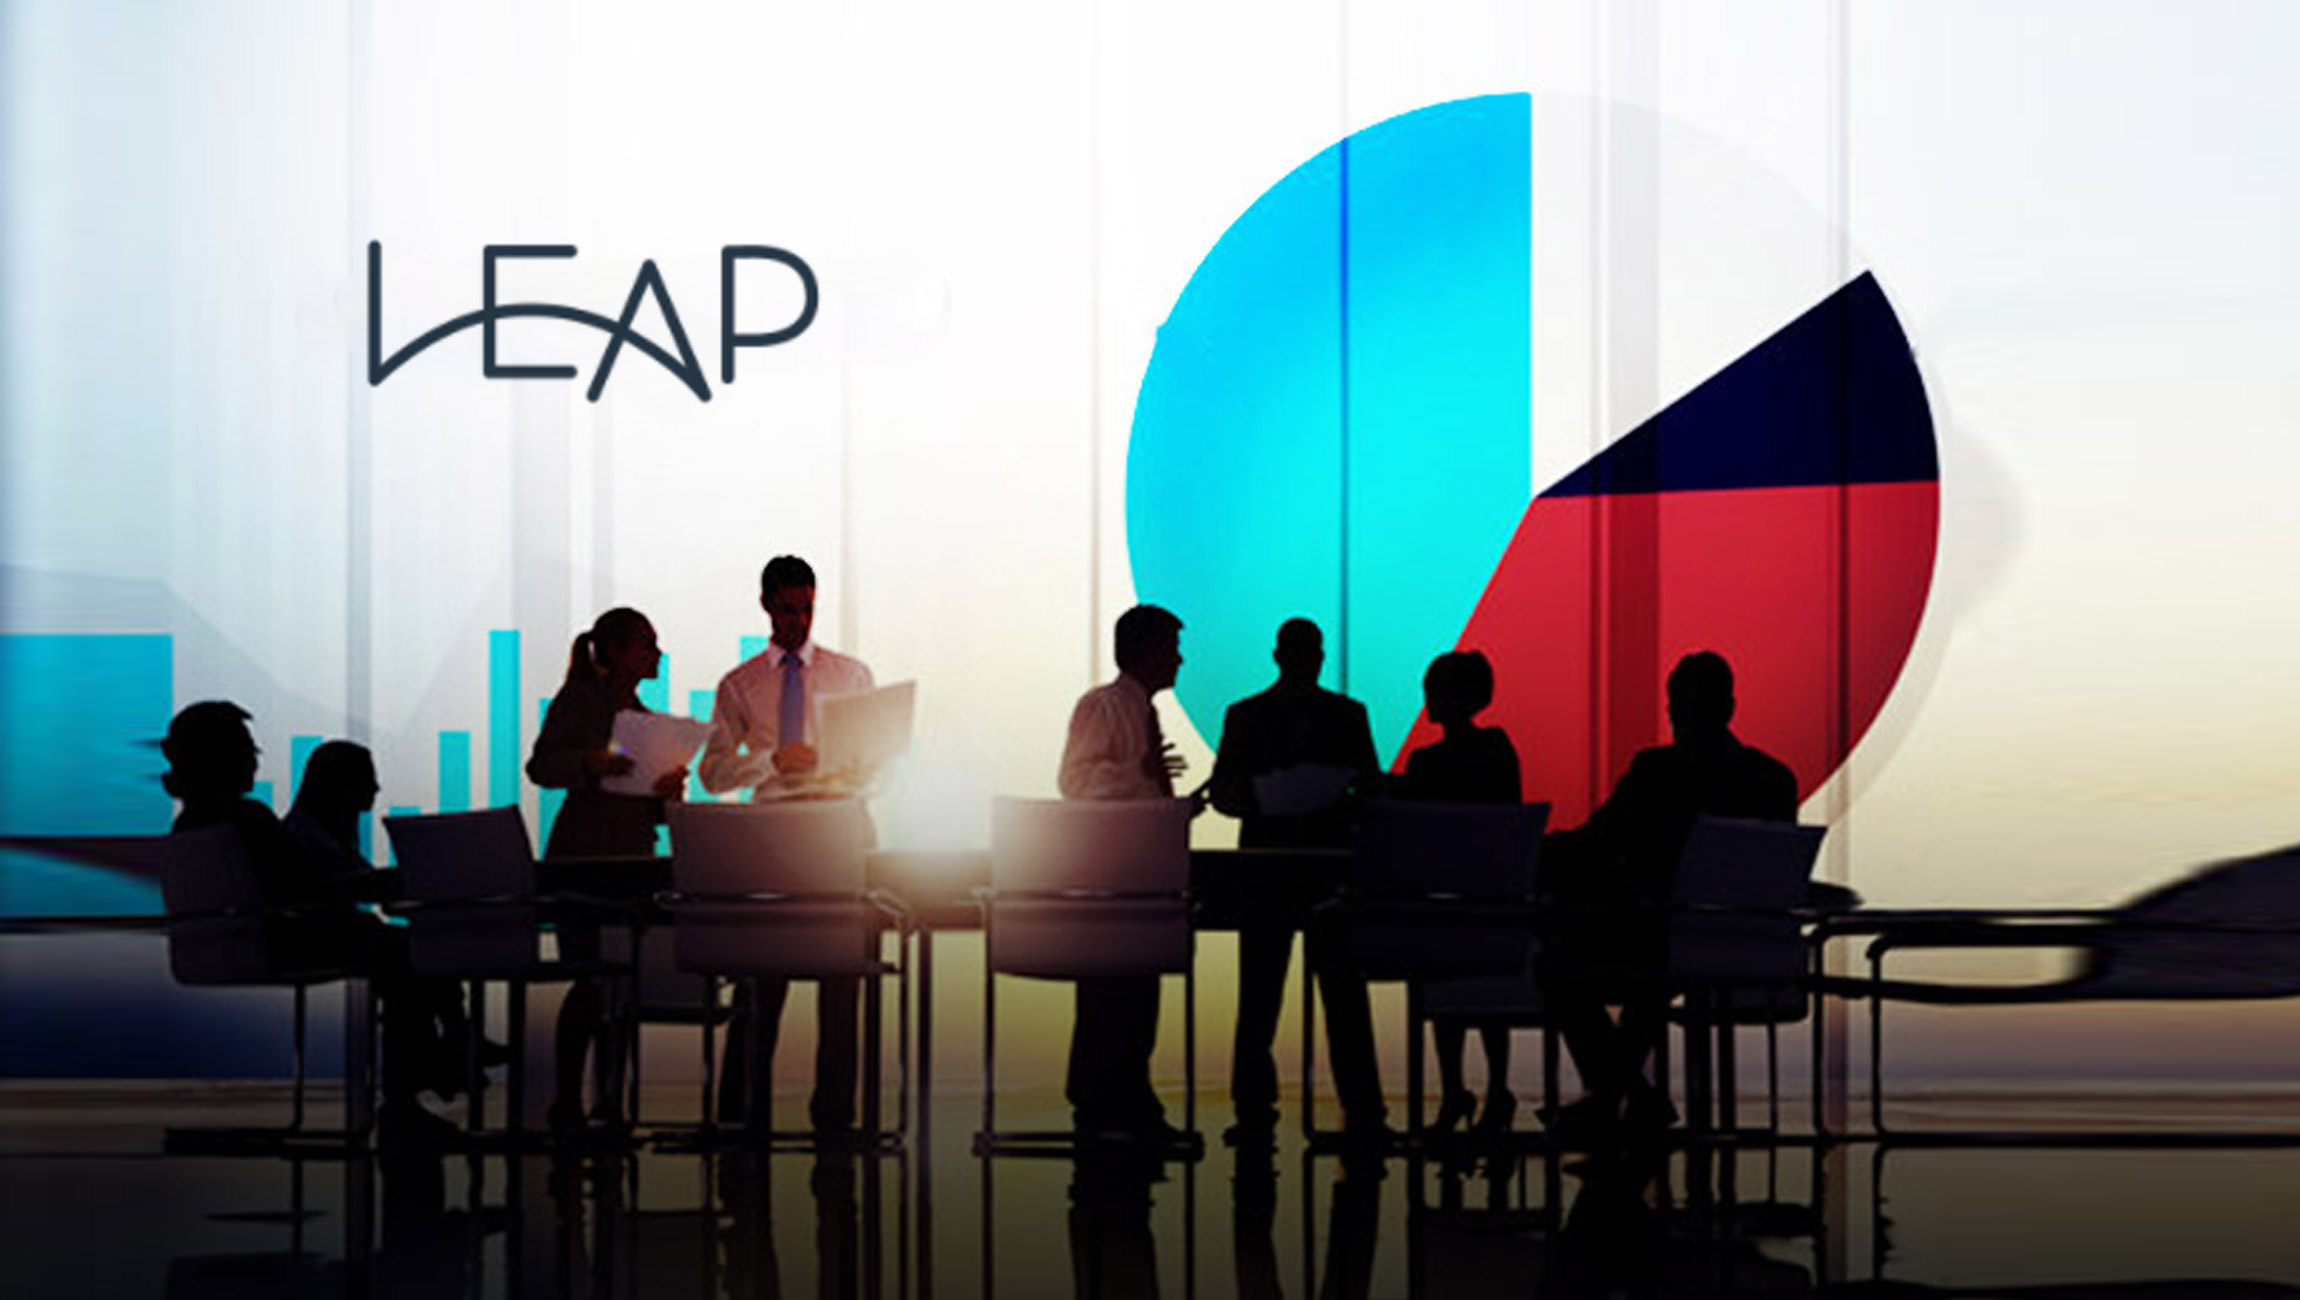 Leap Platform Expanding Store Count 300% in 2021